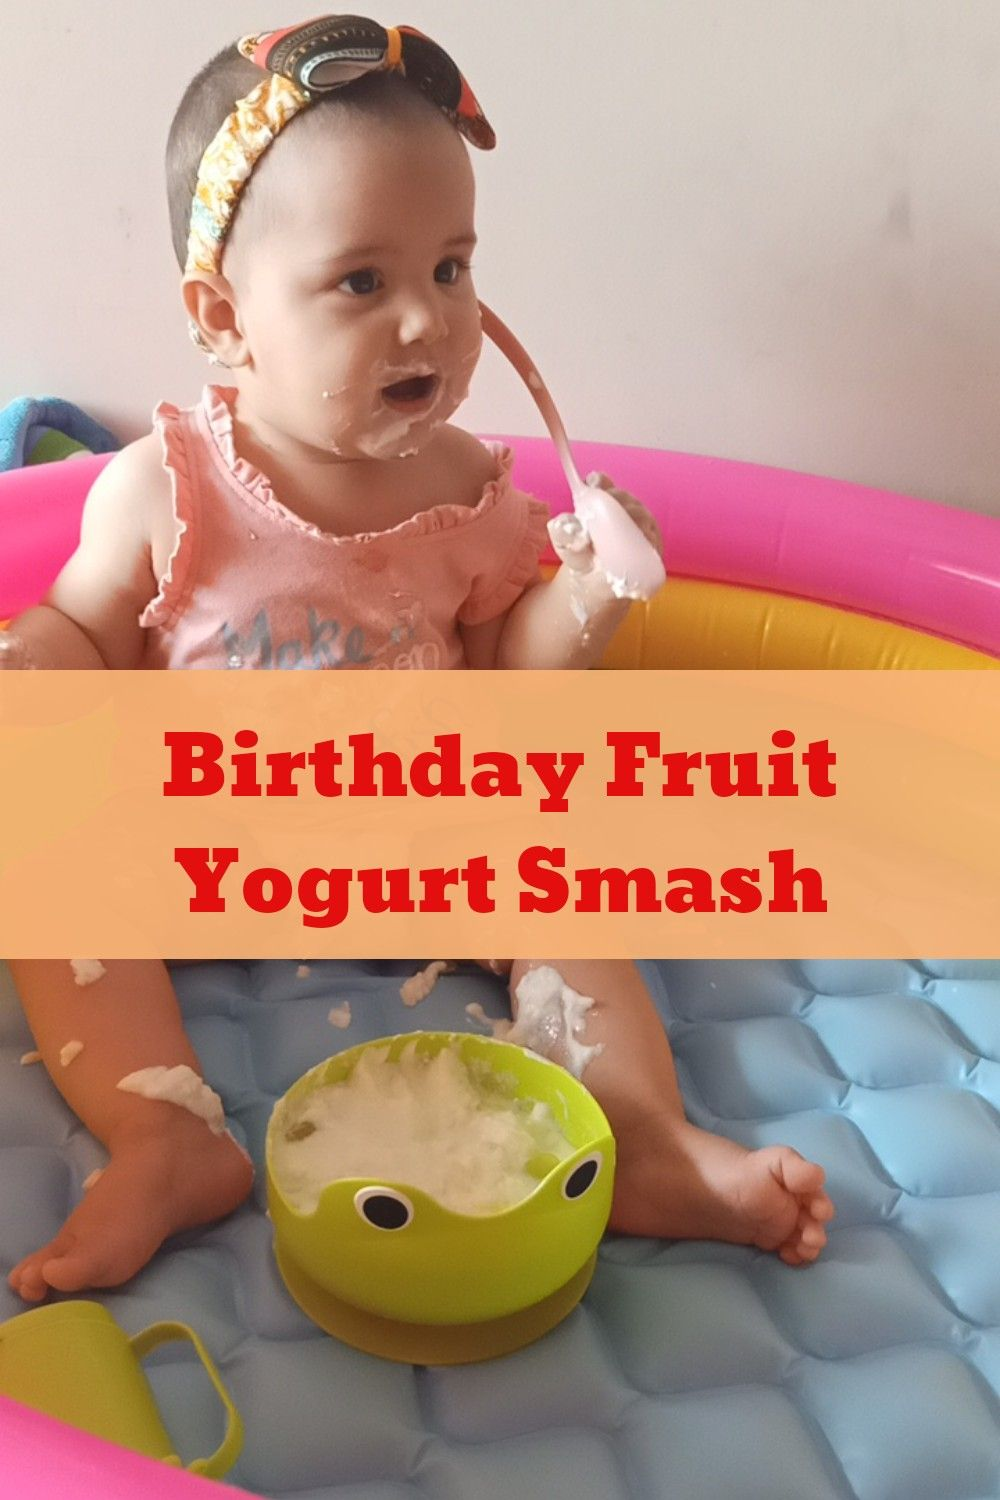 First birthday smash ideas in 2020 | Baby led weaning ...